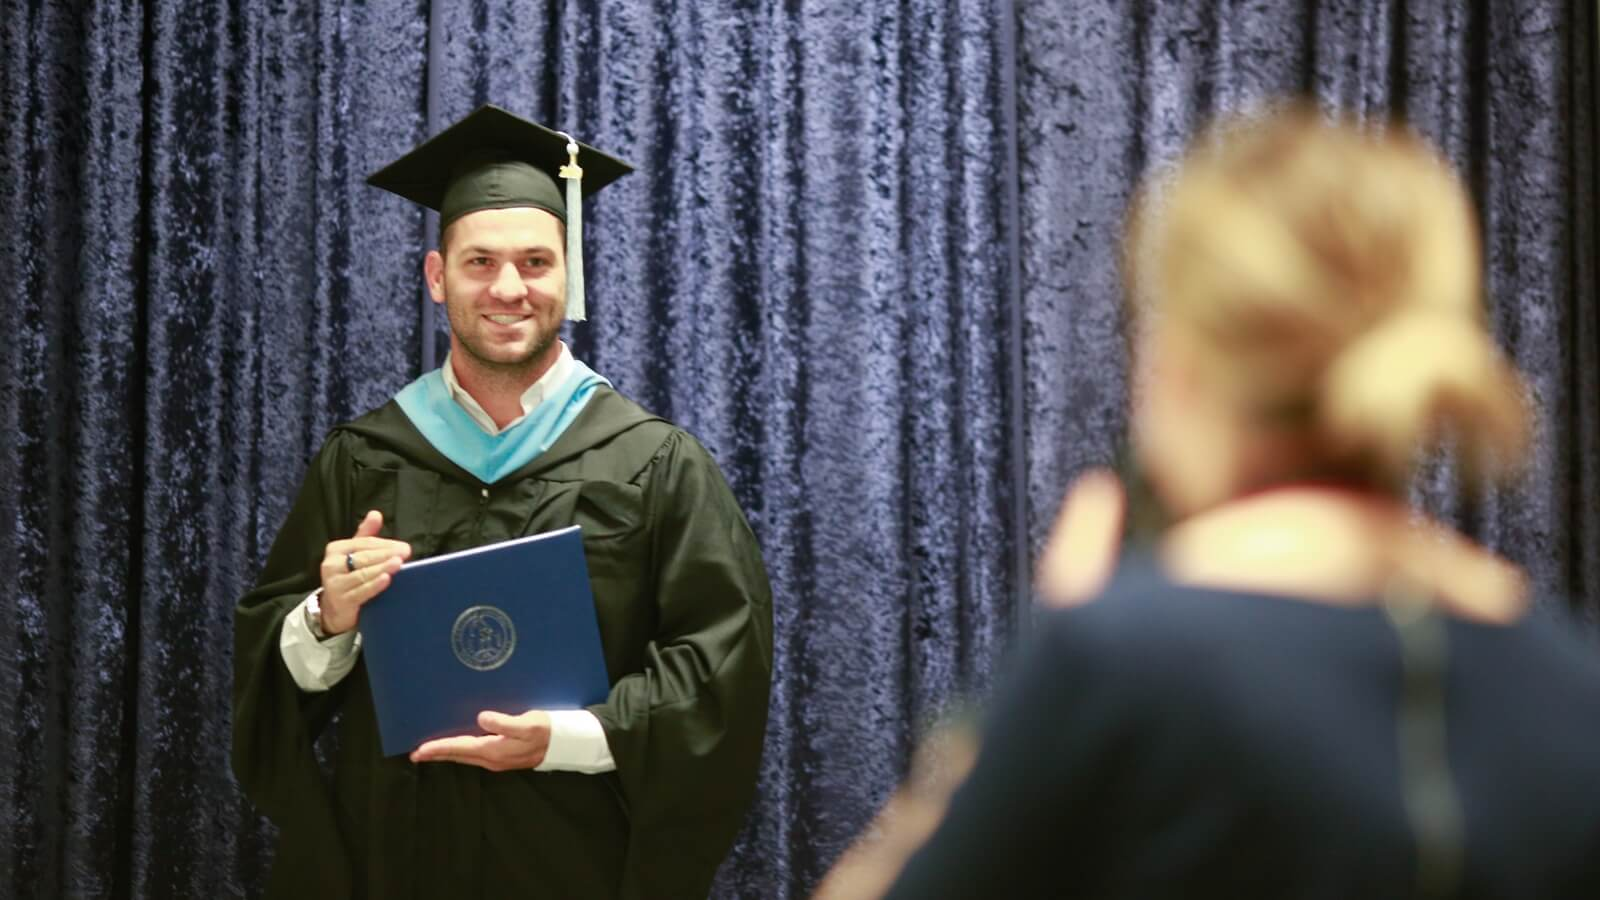 Student taking a graduation photo